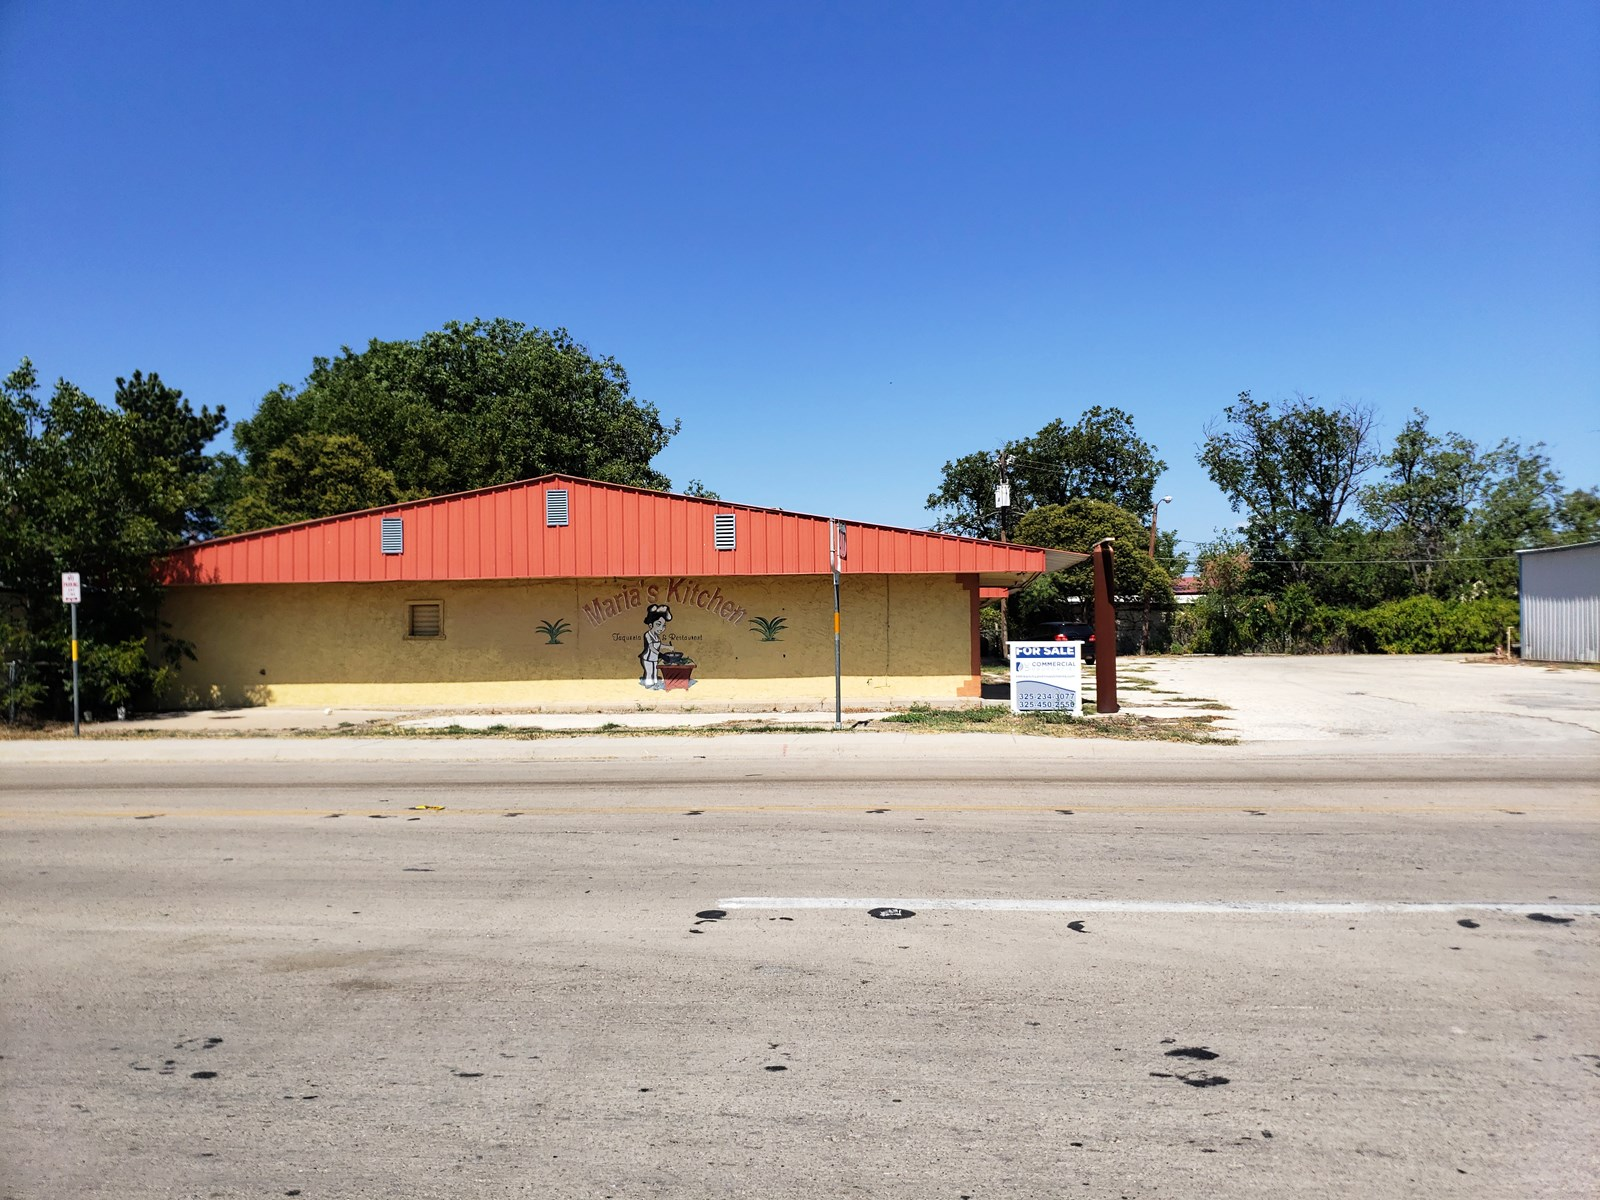 Commercial Property in Sonora, TX Close to I-10